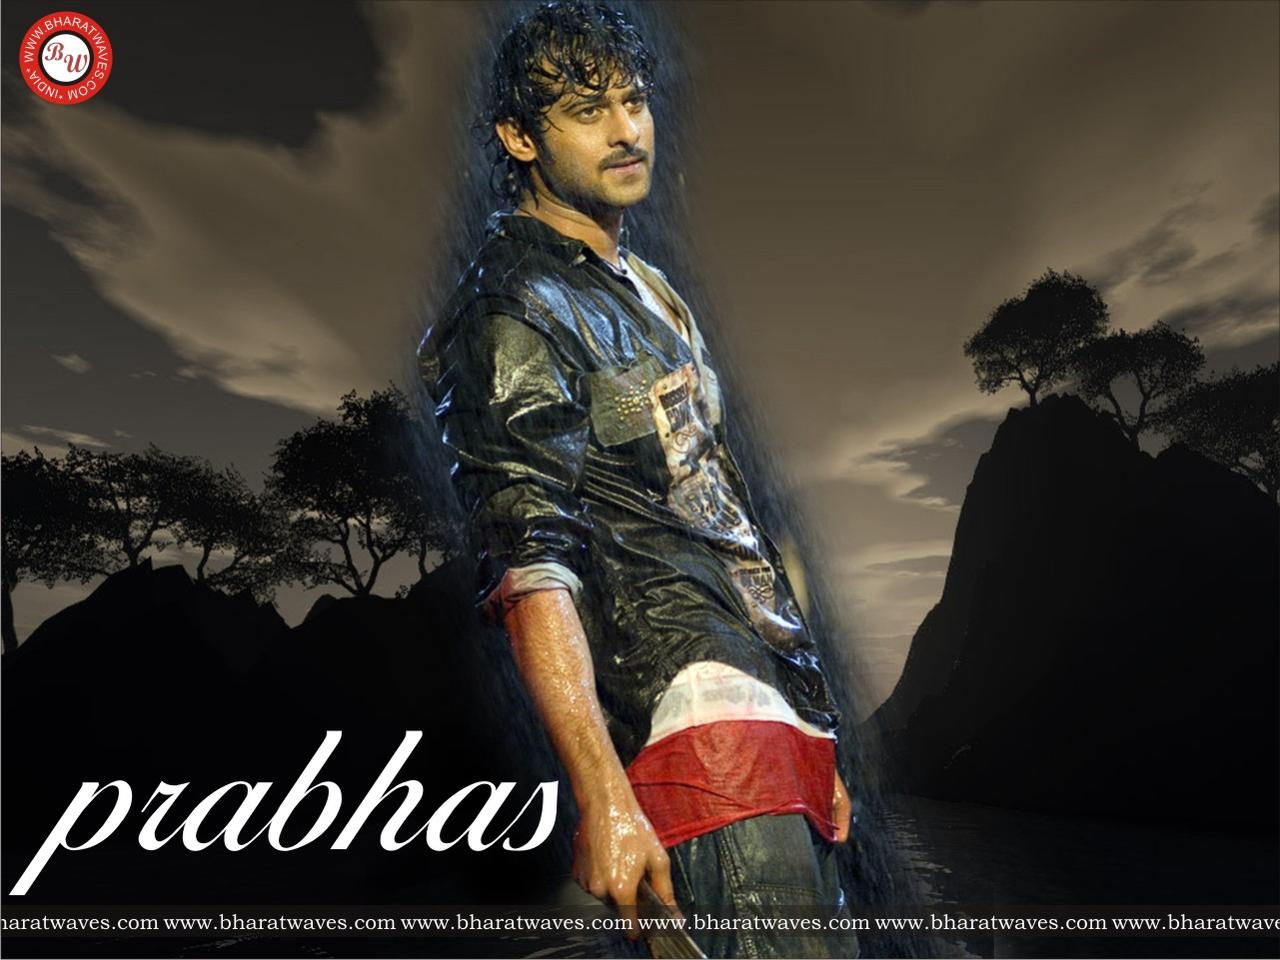 Prabhas Wallpapers Free Download Mobile: Free Wallpapers: Photos Of Prabhas